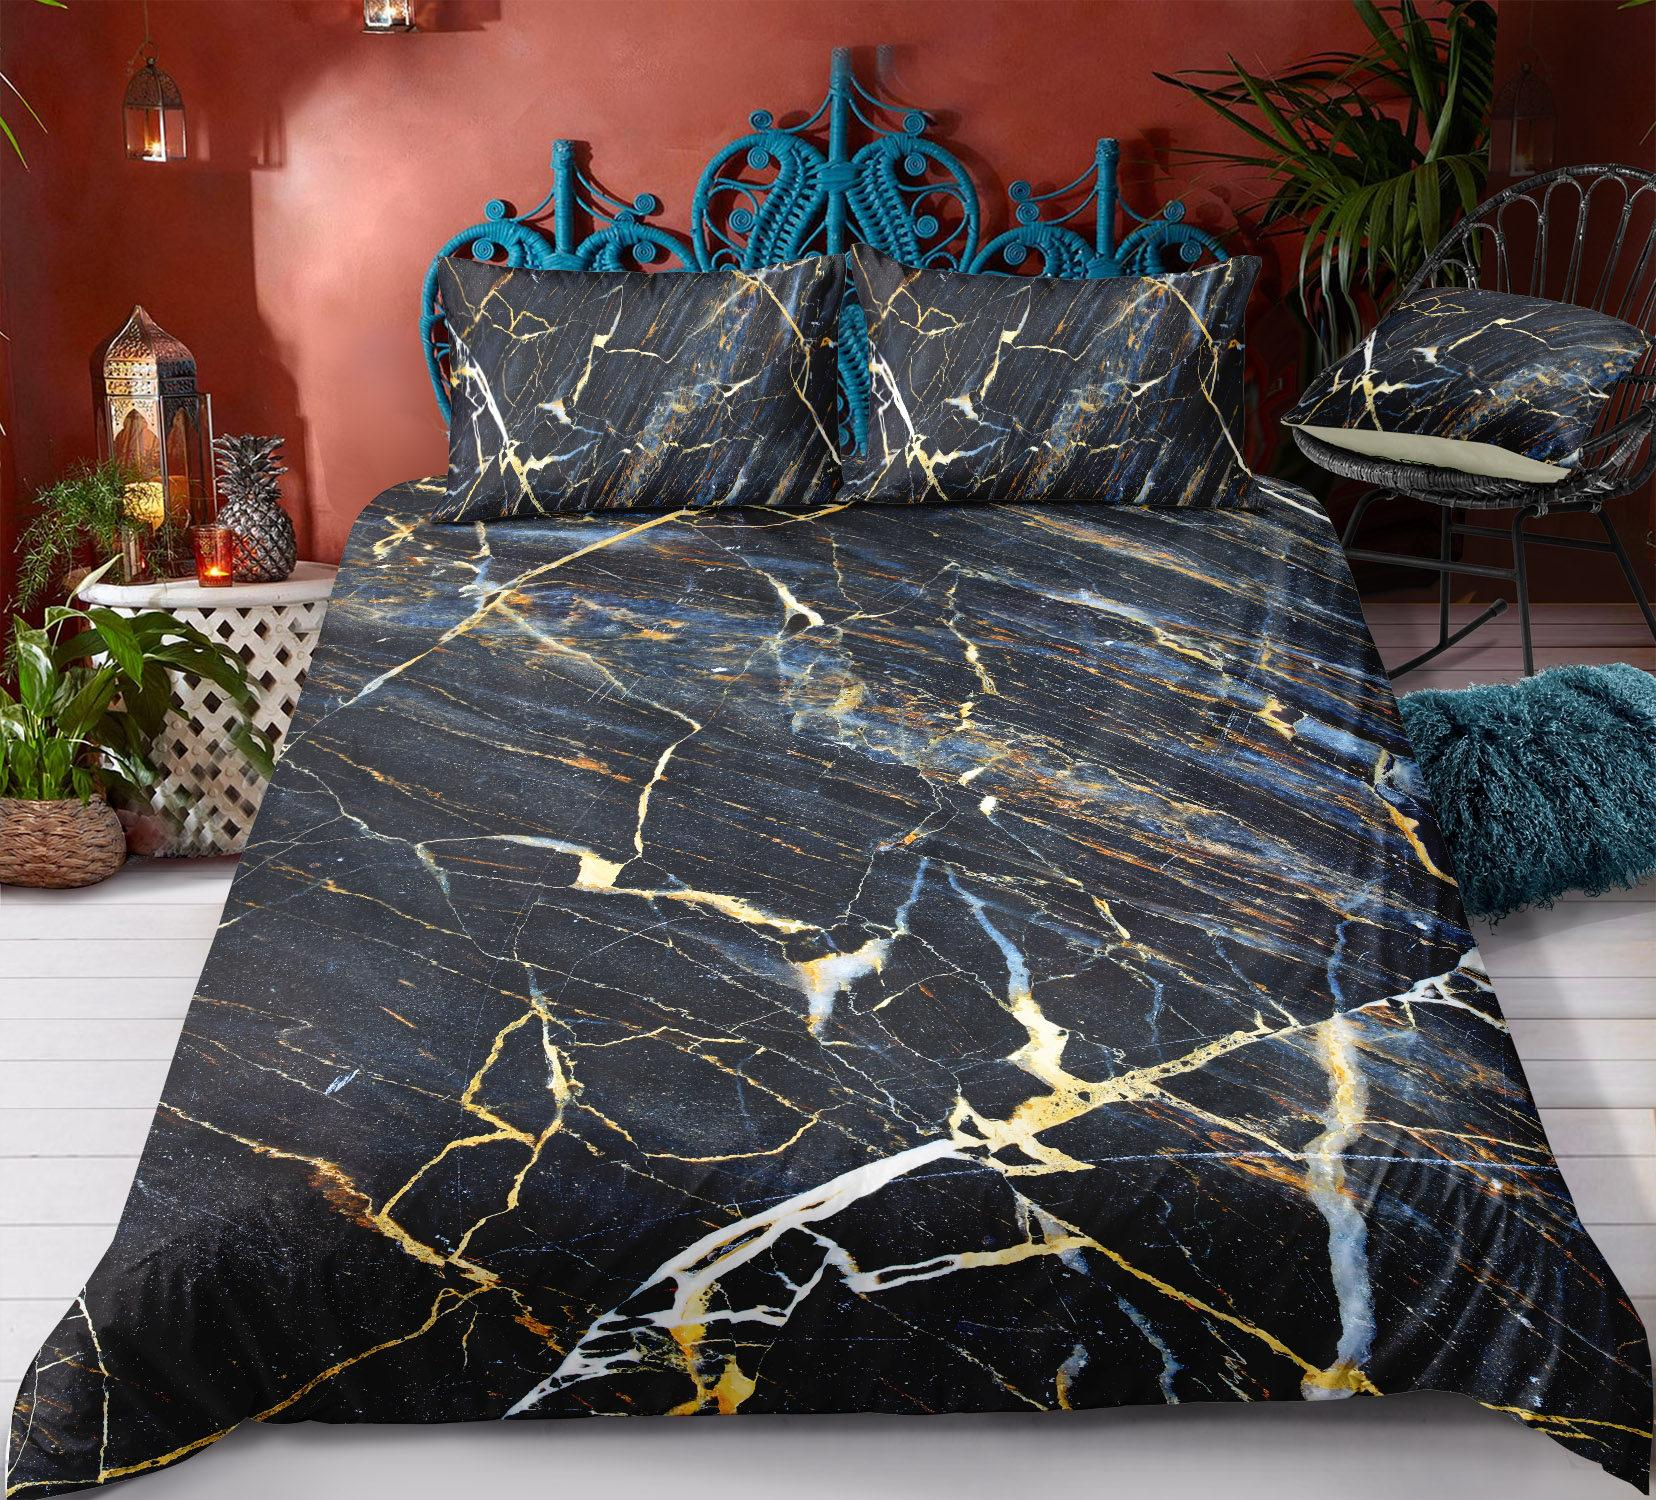 Bedding Marble Effect Duvet Cover Comfortable Bedding Fitted Pillowcases Sheet Sets Bed Home Garden Gefradis Fr